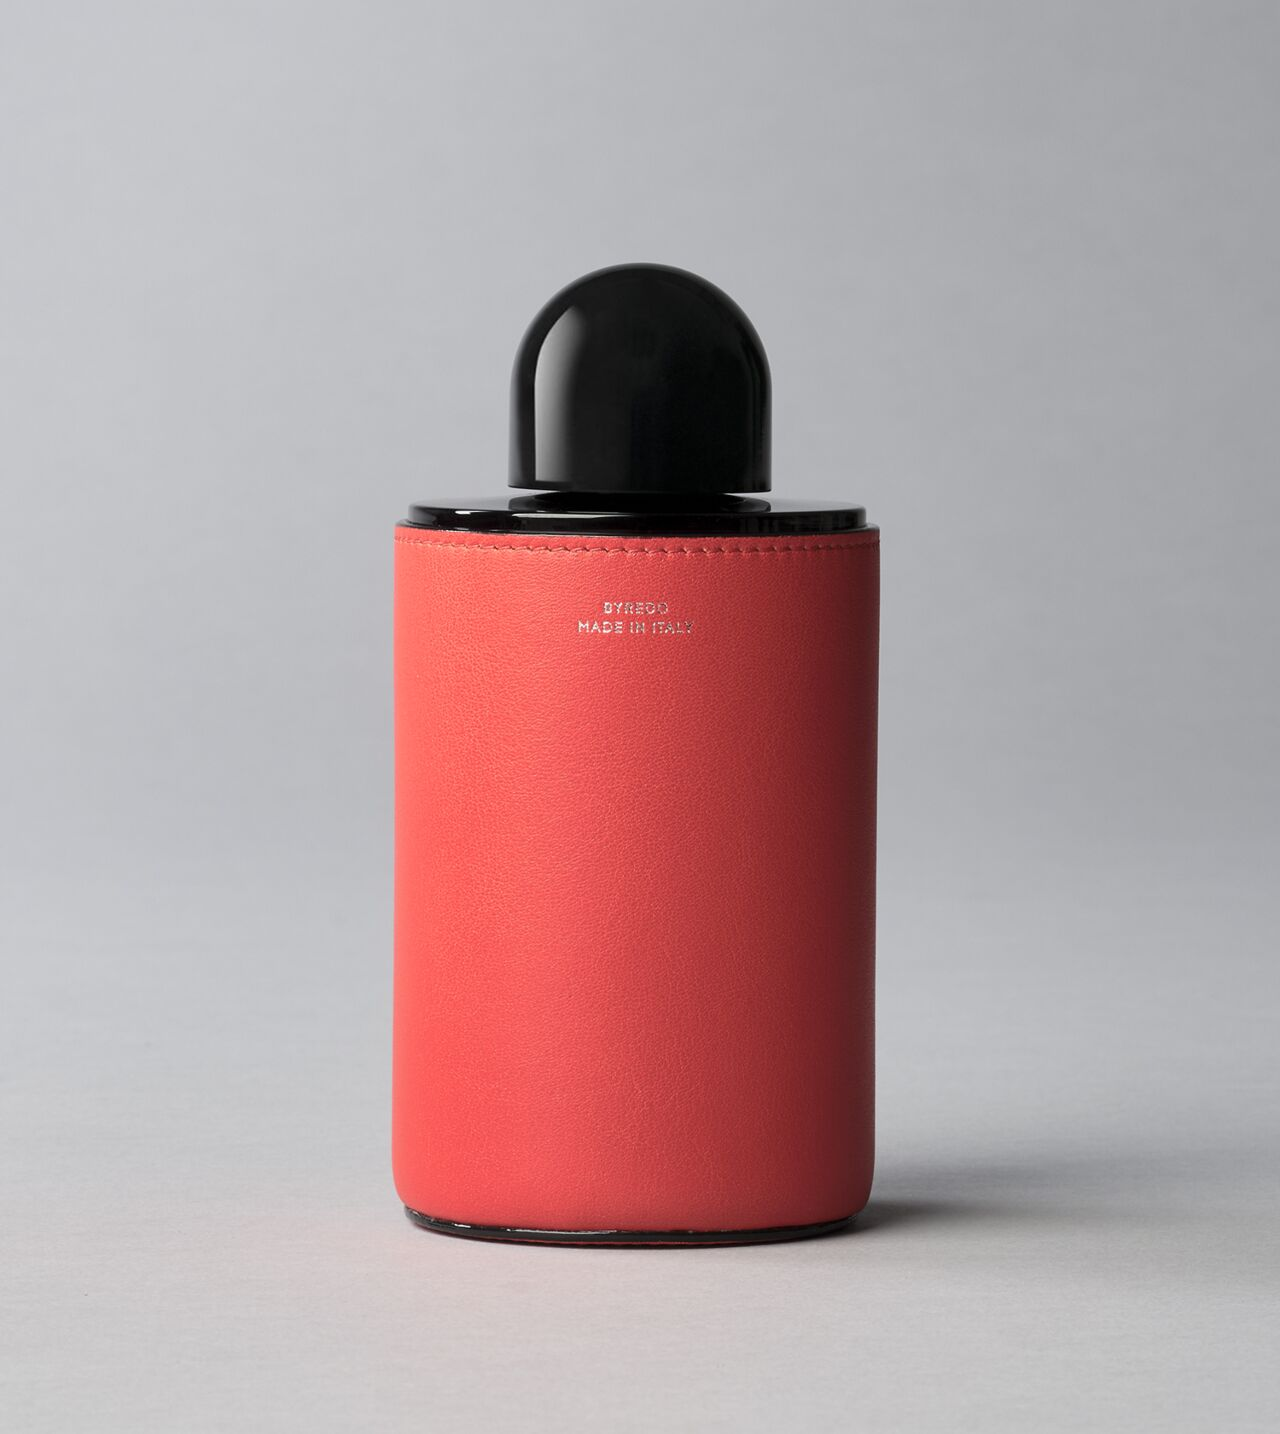 Picture of Byredo Room spray holder 250ml in Bright red leather